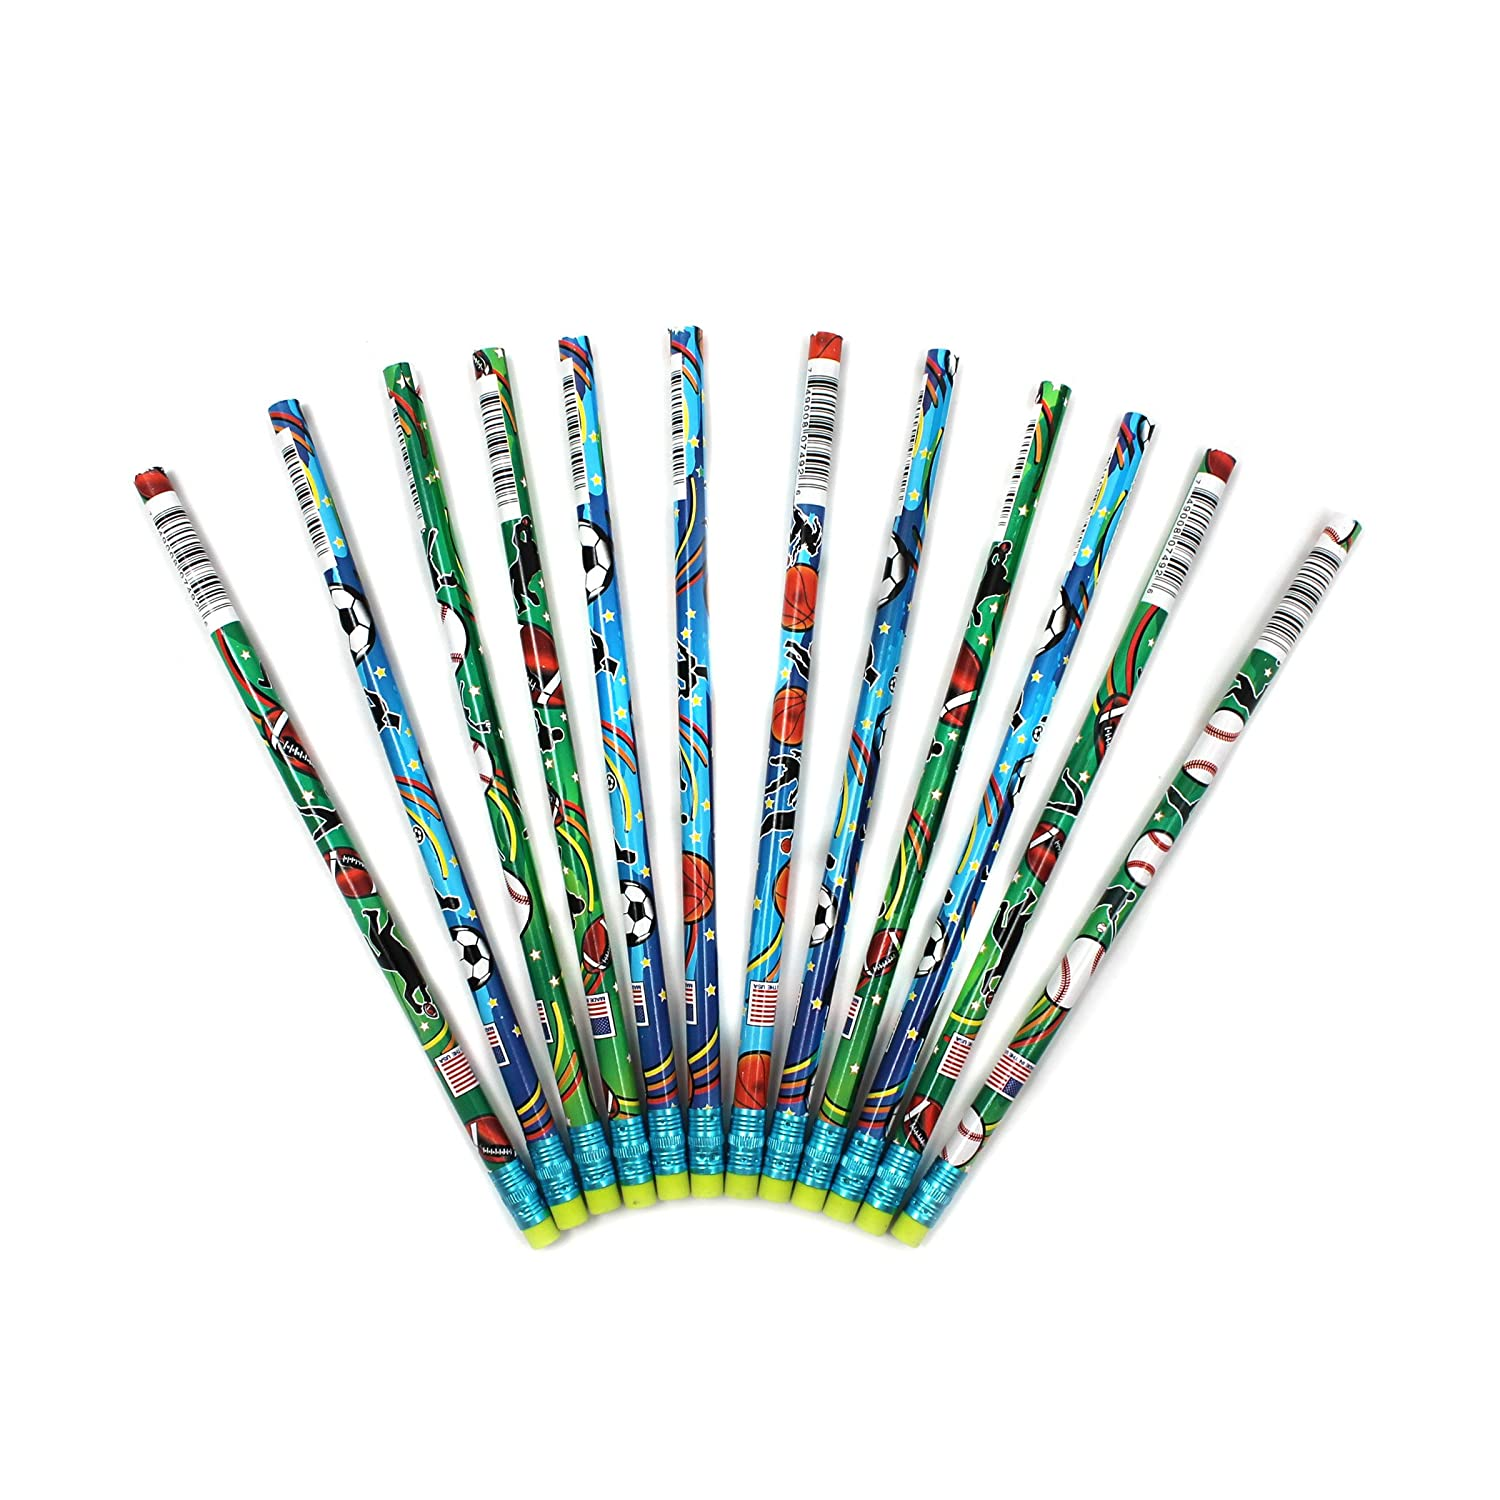 J.R Moon Pencil Sports Assorted Decorated Pencils Pack of 12